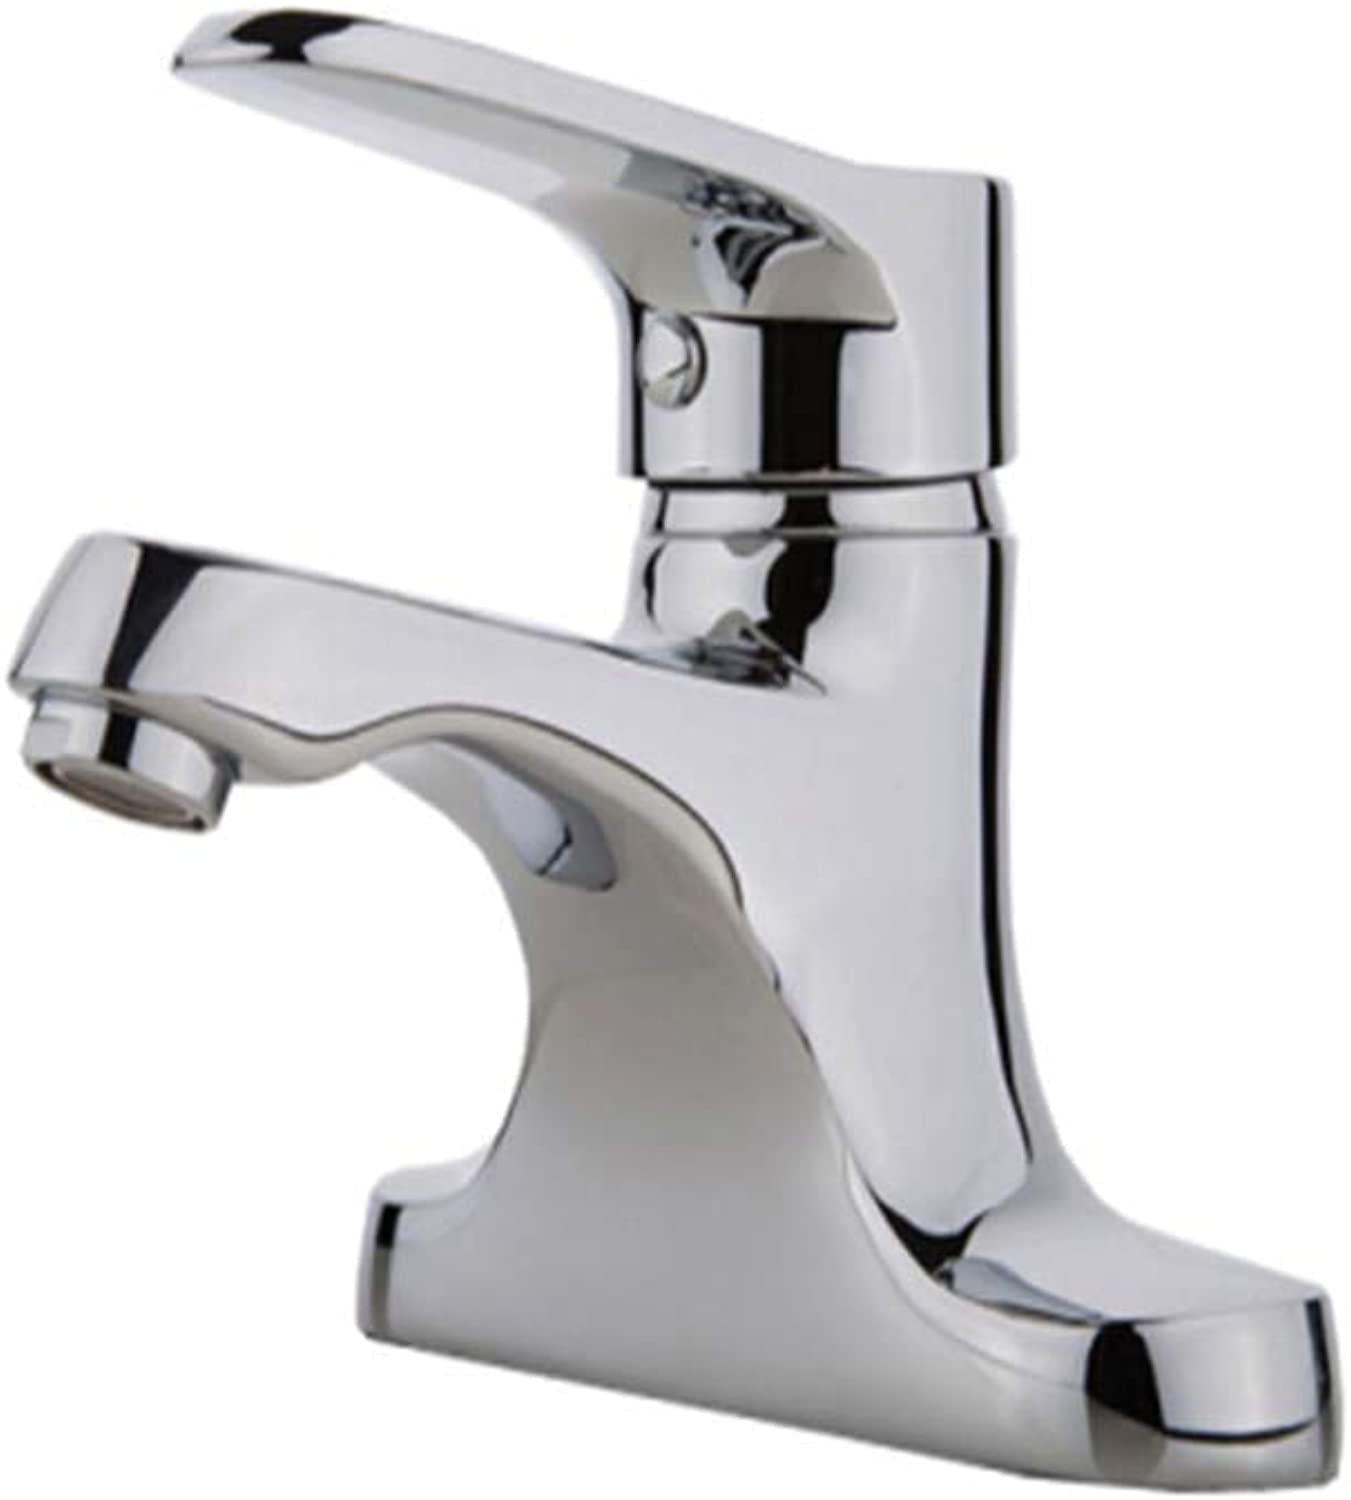 Kitchen Faucet Tapstainless Steelkitchen Faucet Probathroom Bath Faucet, All Copper Hot and Cold Dual Hole Faucet